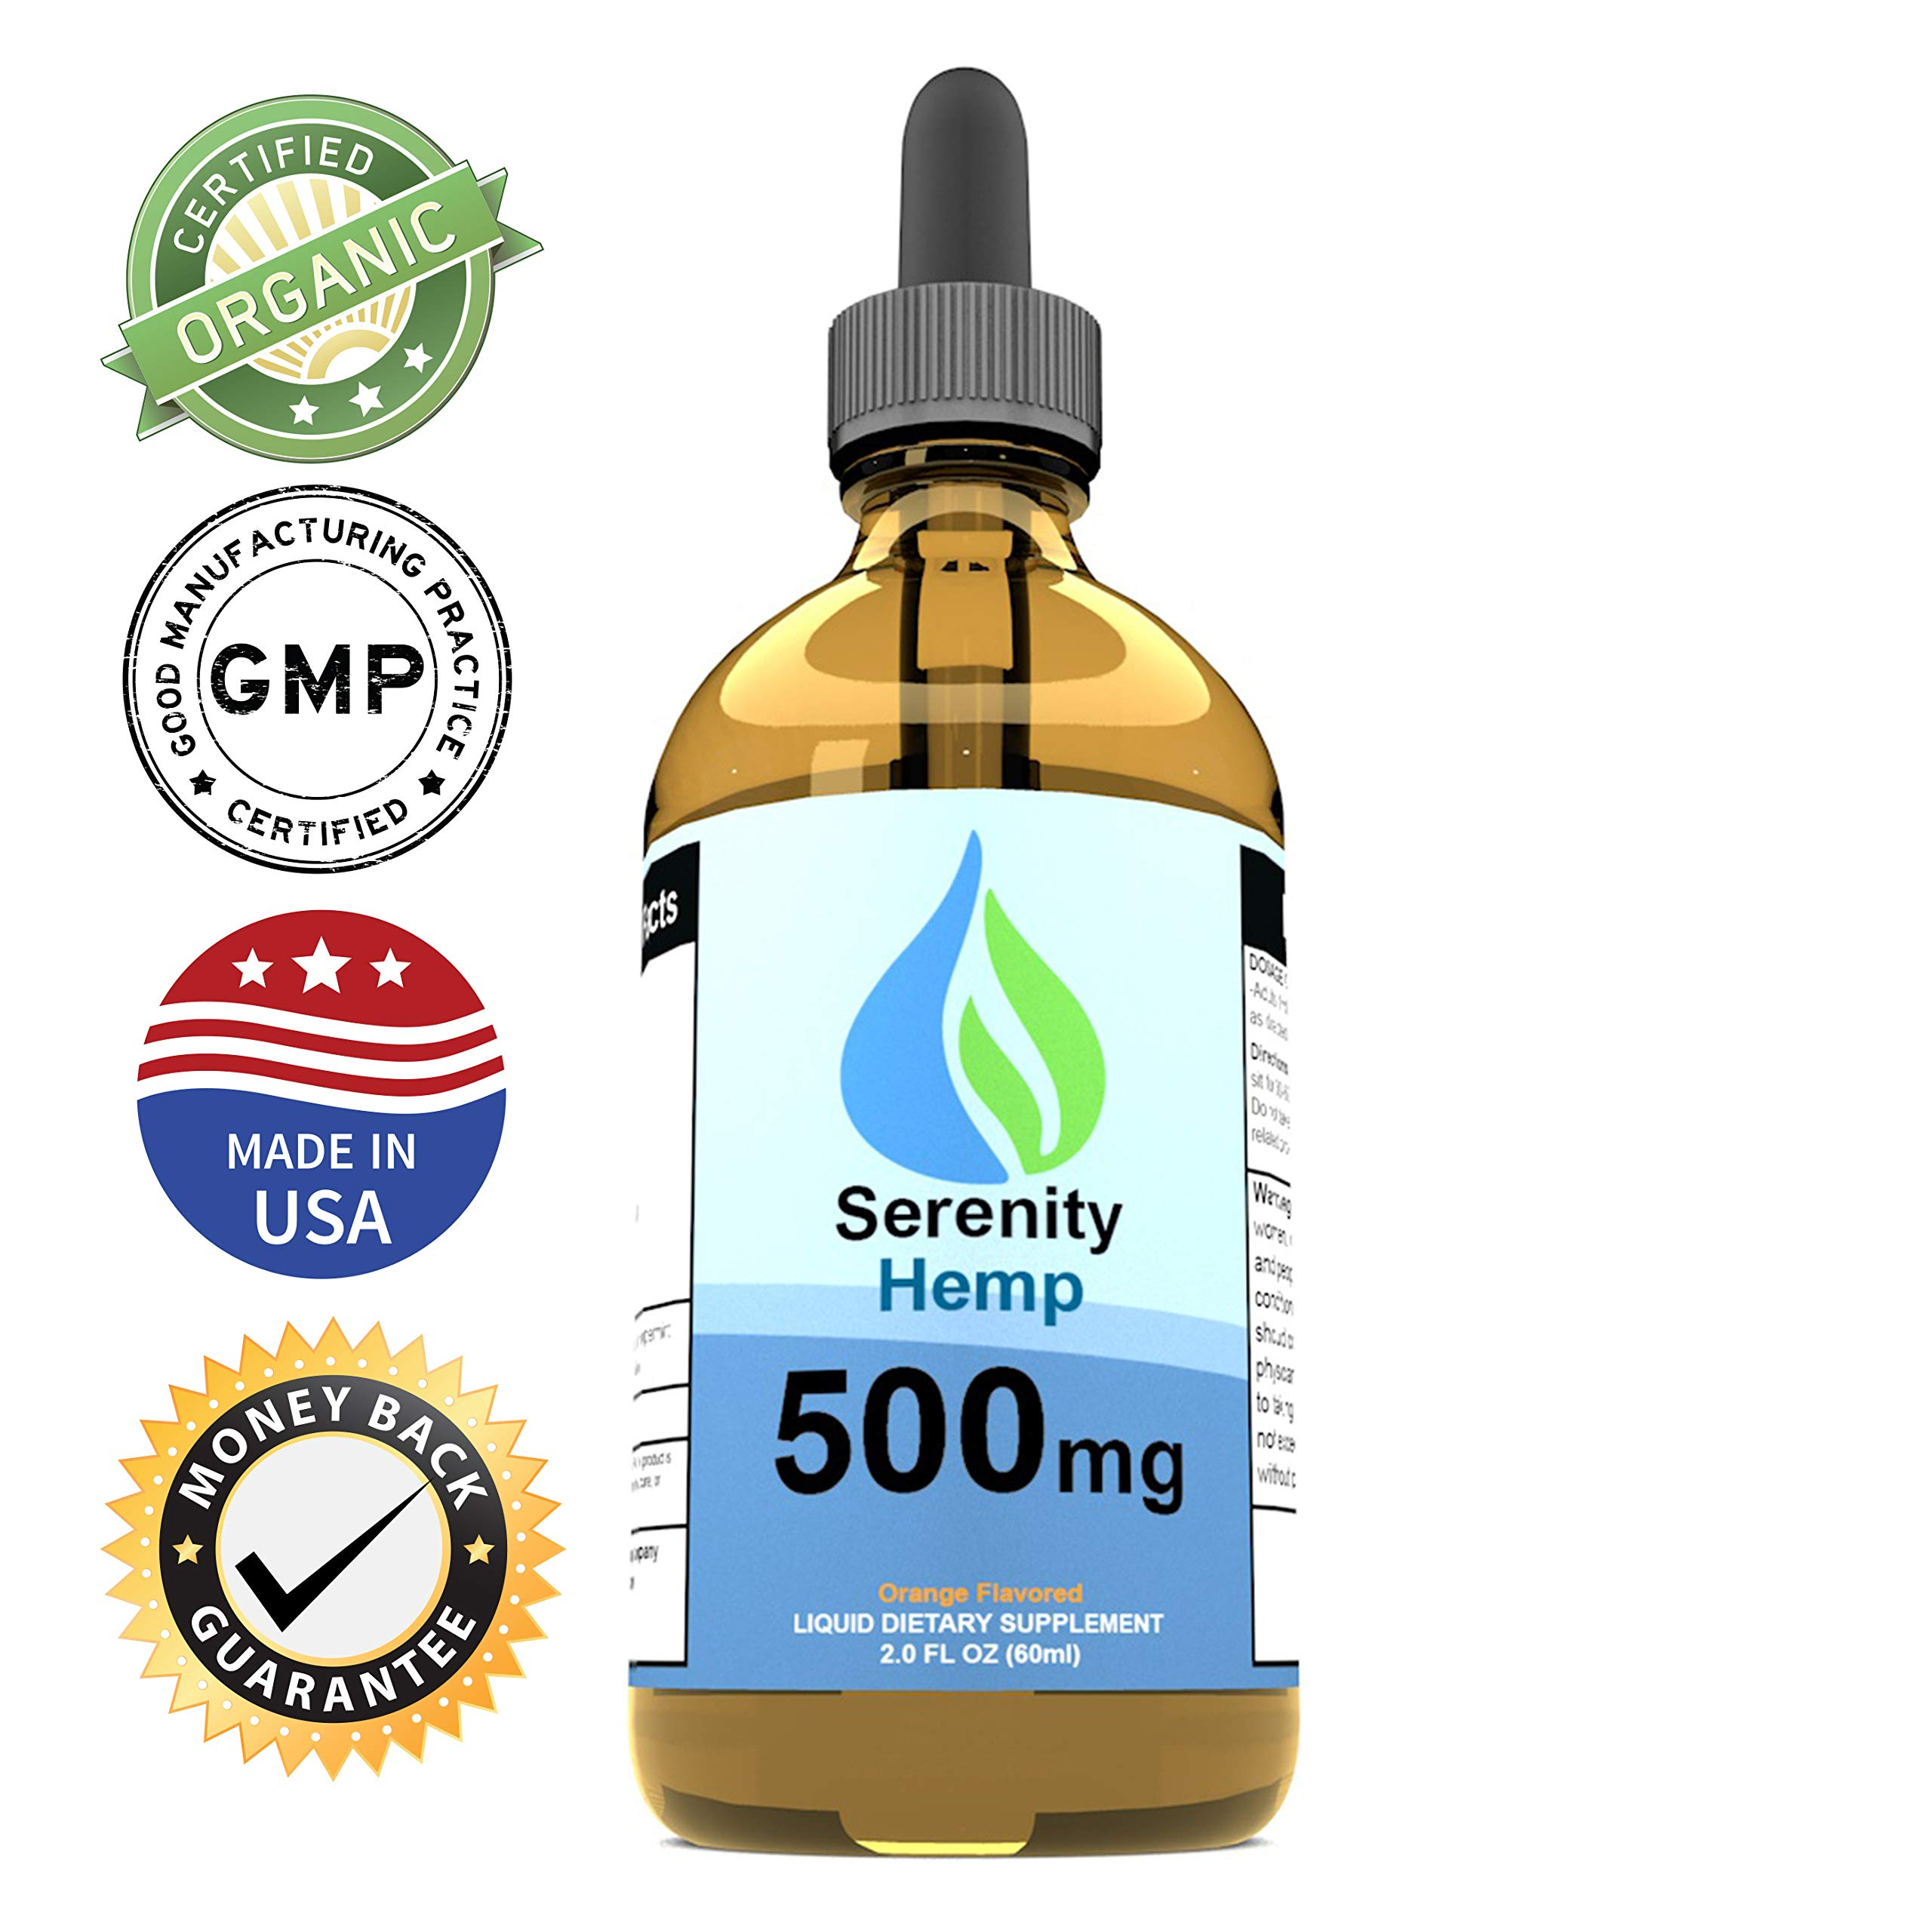 Serenity Hemp Oil - 2 fl oz 500 mg Orange Flavored - Relief for Stress, Inflammation, Pain, Sleep, Anxiety, Depression, Nausea - Rich in Vitamin E, Vitamin B, Omega 3,6,9 and More! Certified Organic by Serenity Hemp Company